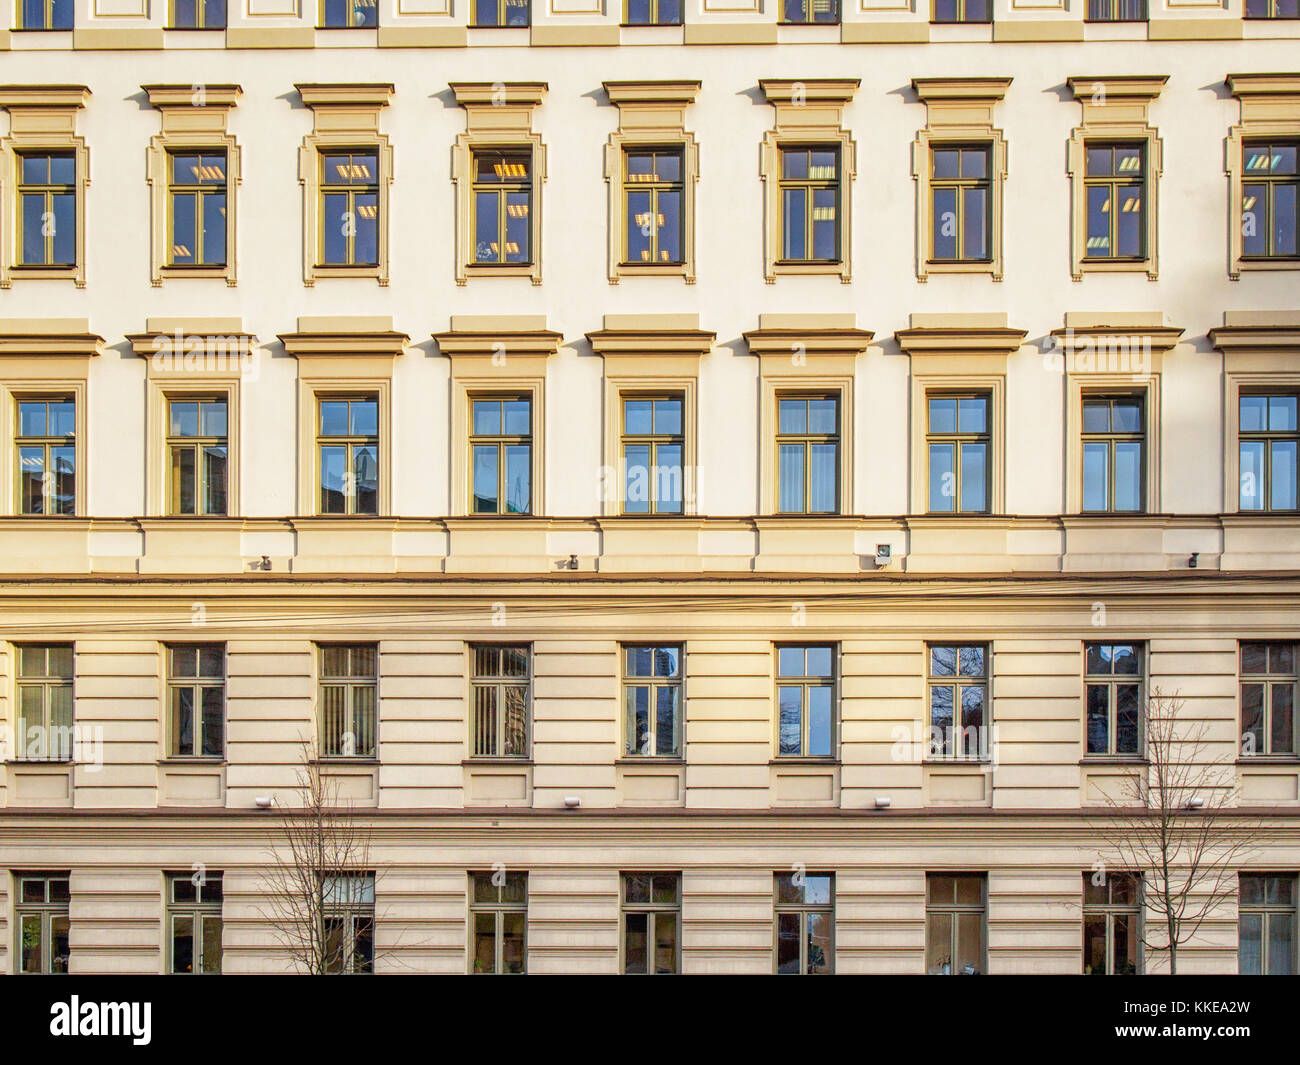 Facade with windows in the Soviet classicism style in Vilnius - Stock Image